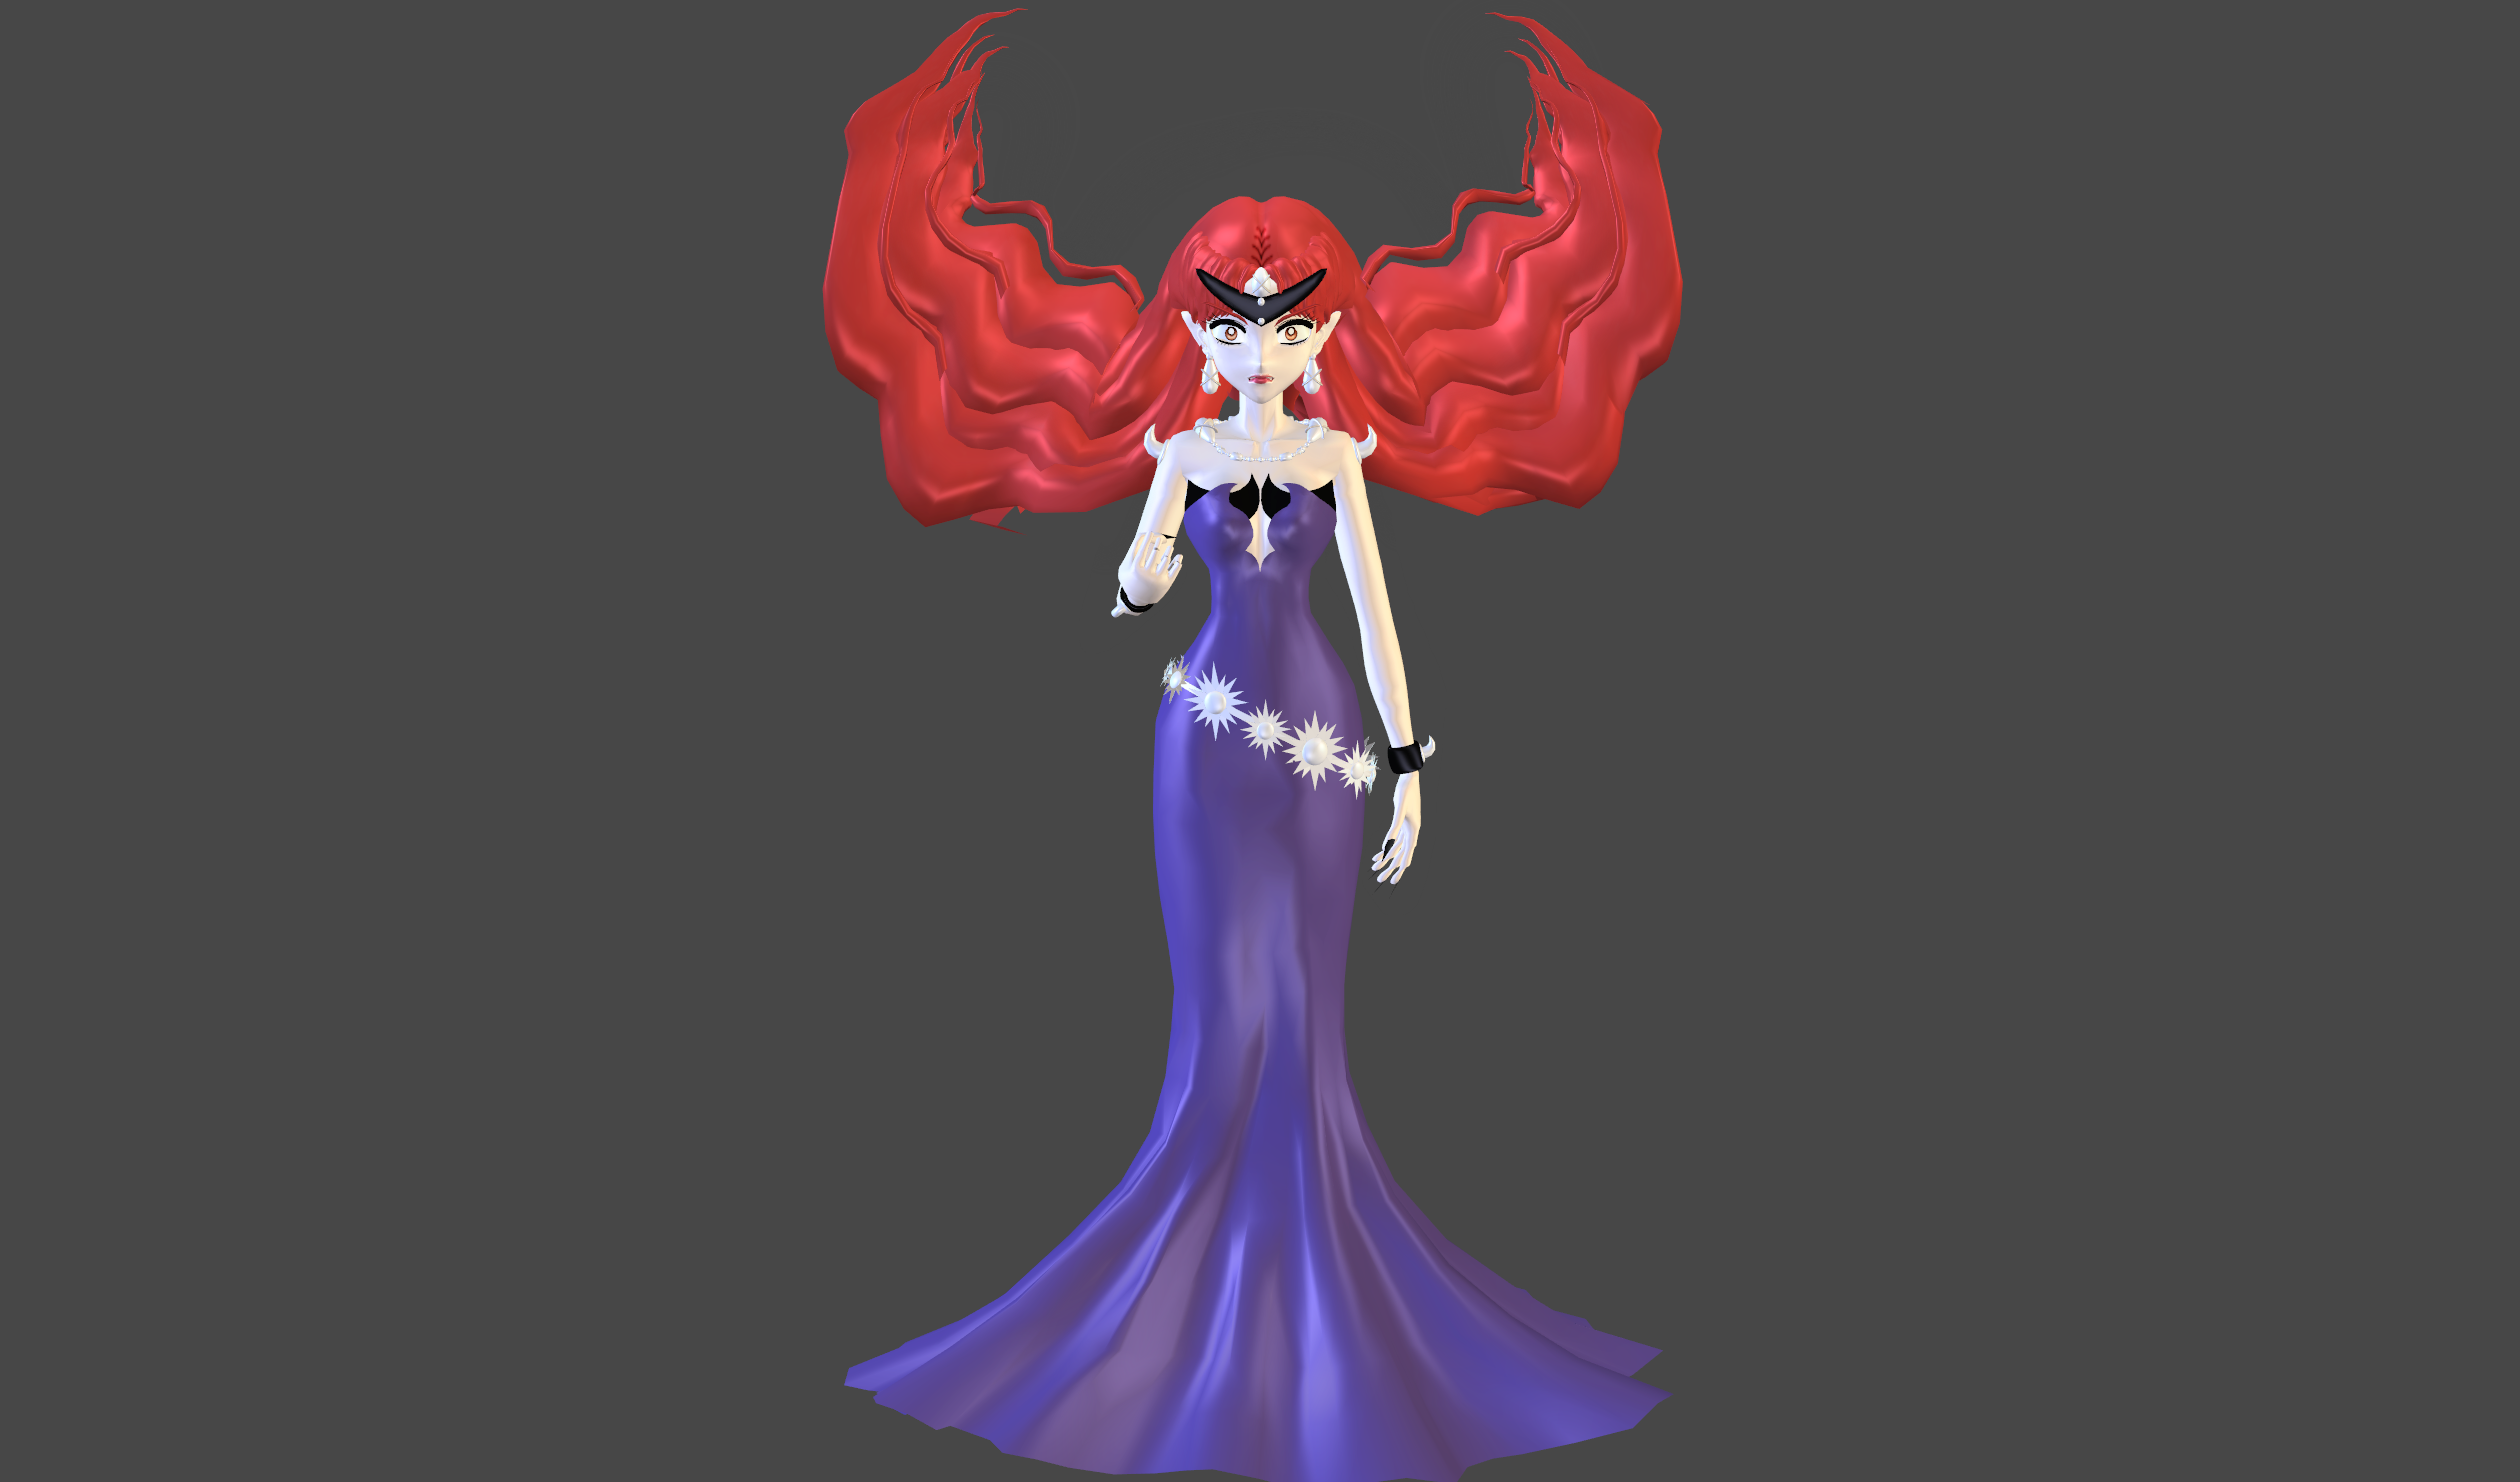 Queen Beryl Manga mesh mod by Lopieloo on DeviantArt